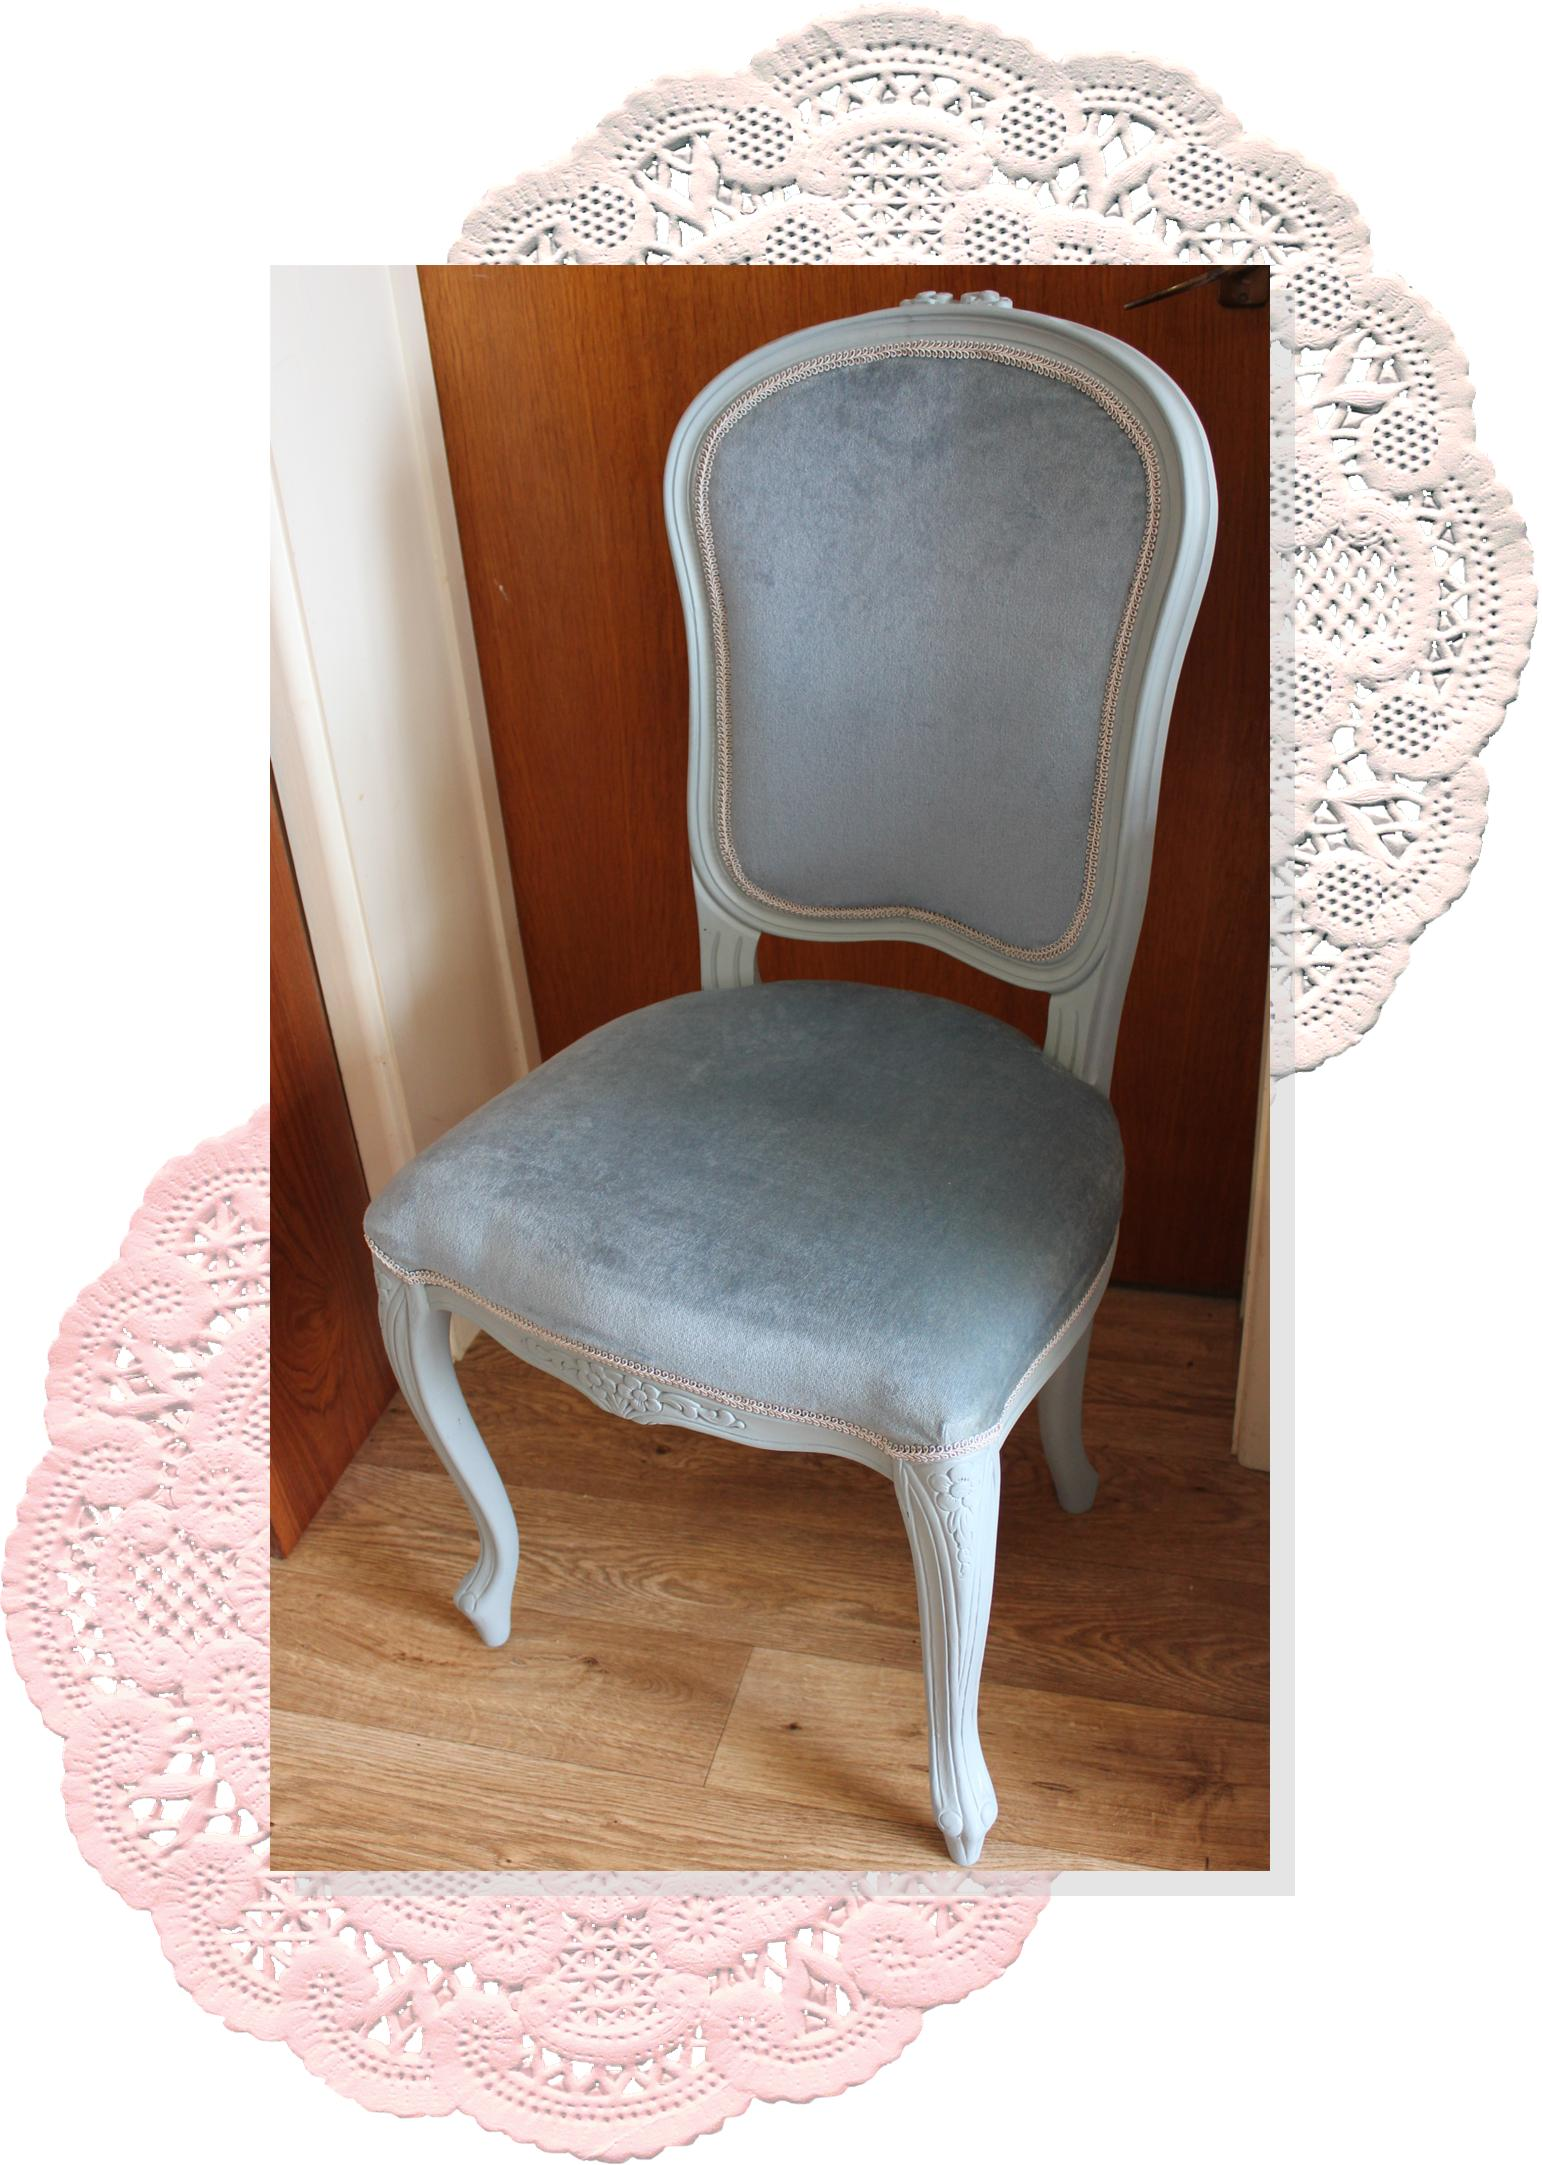 A diy project renovating an old dining chair for Dining table dressing